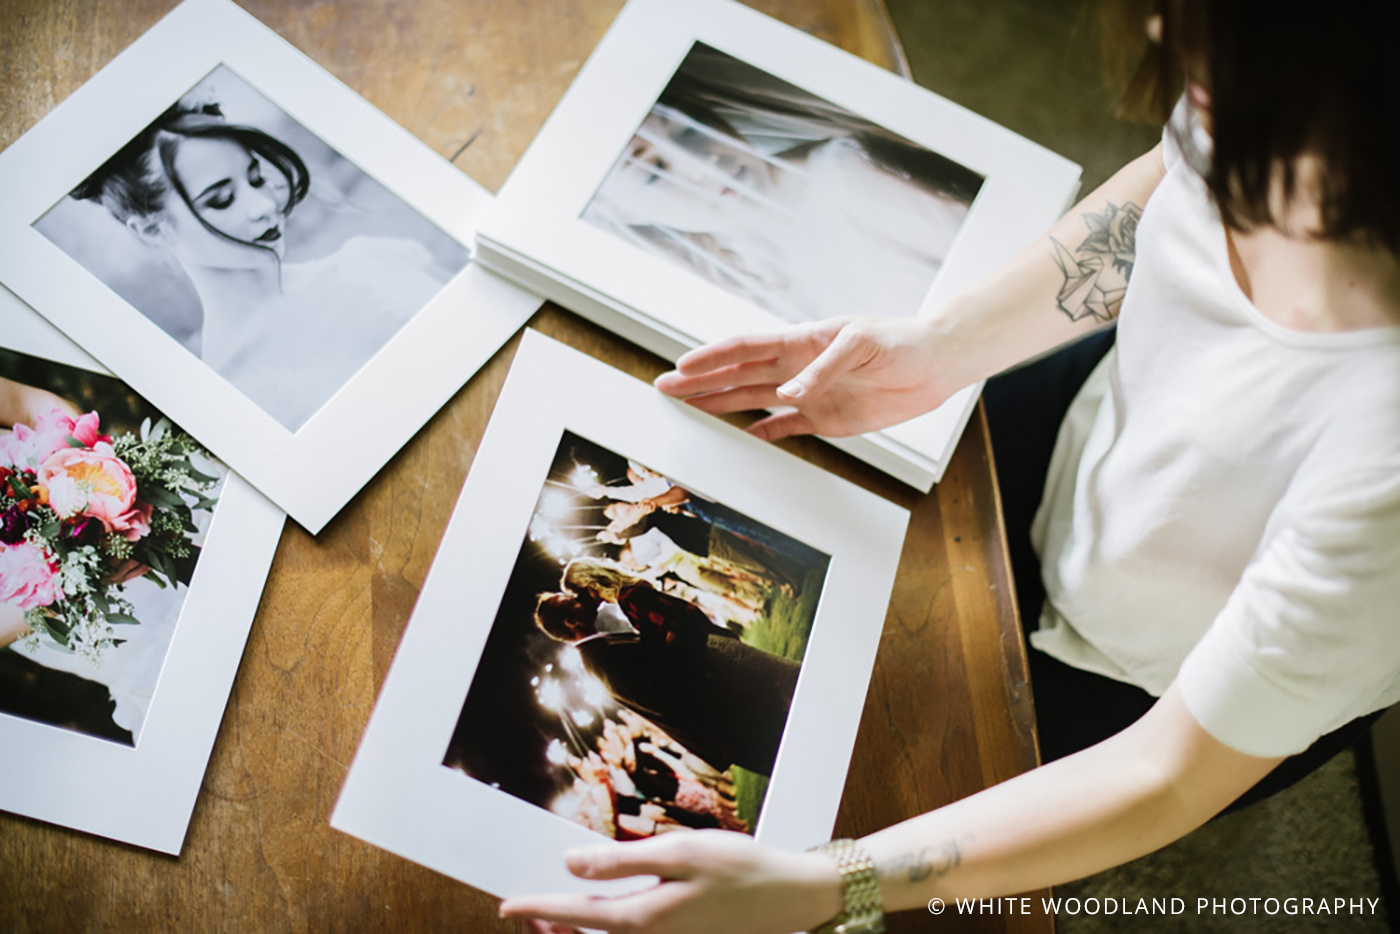 Importance of Branding Your Photography Business